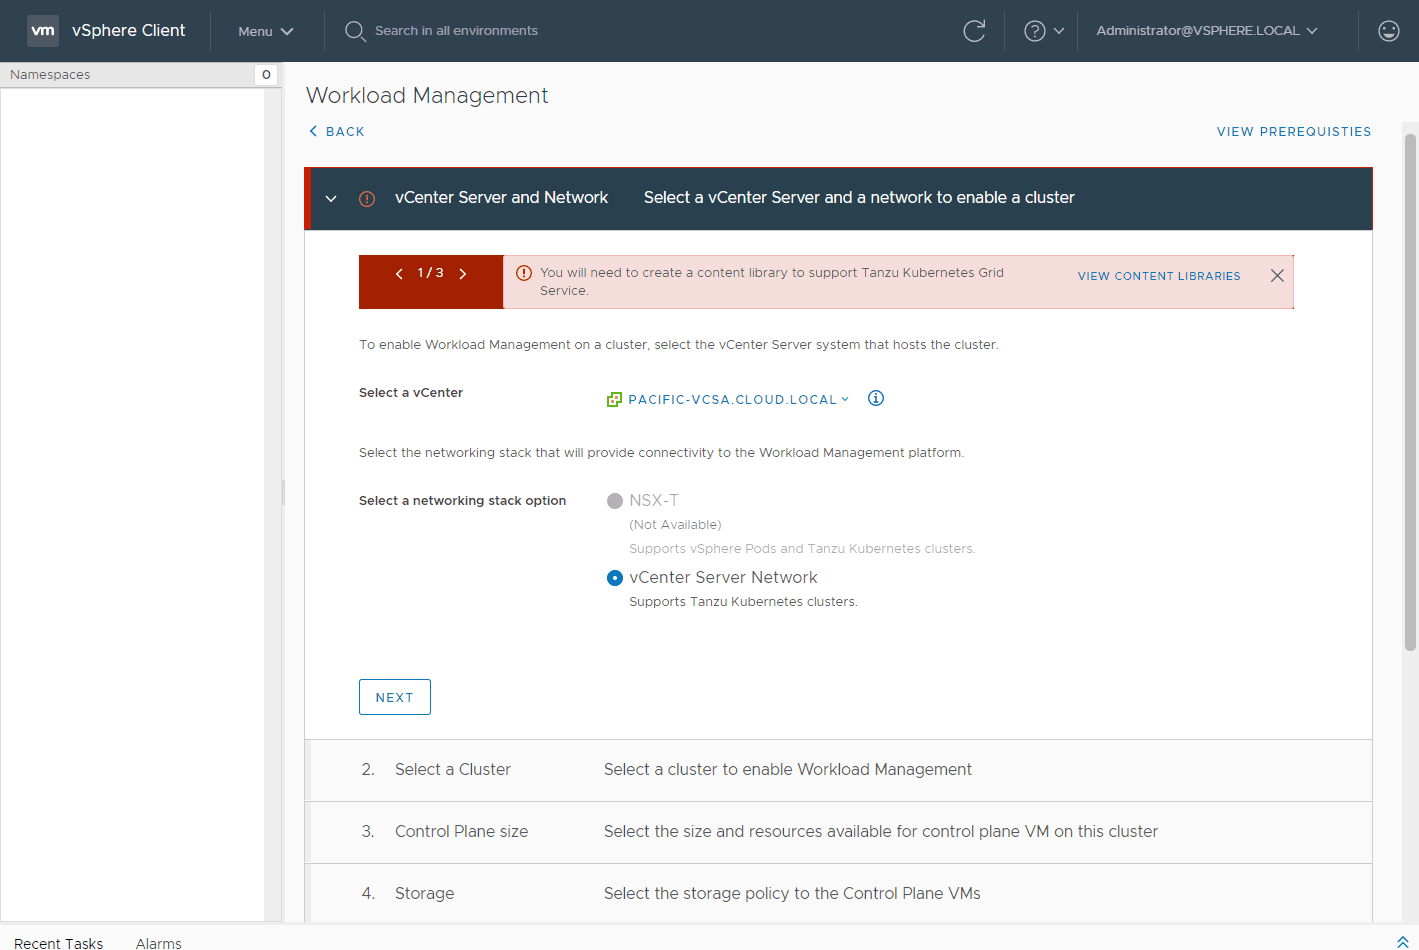 Choose-the-vCenter-Server-and-network